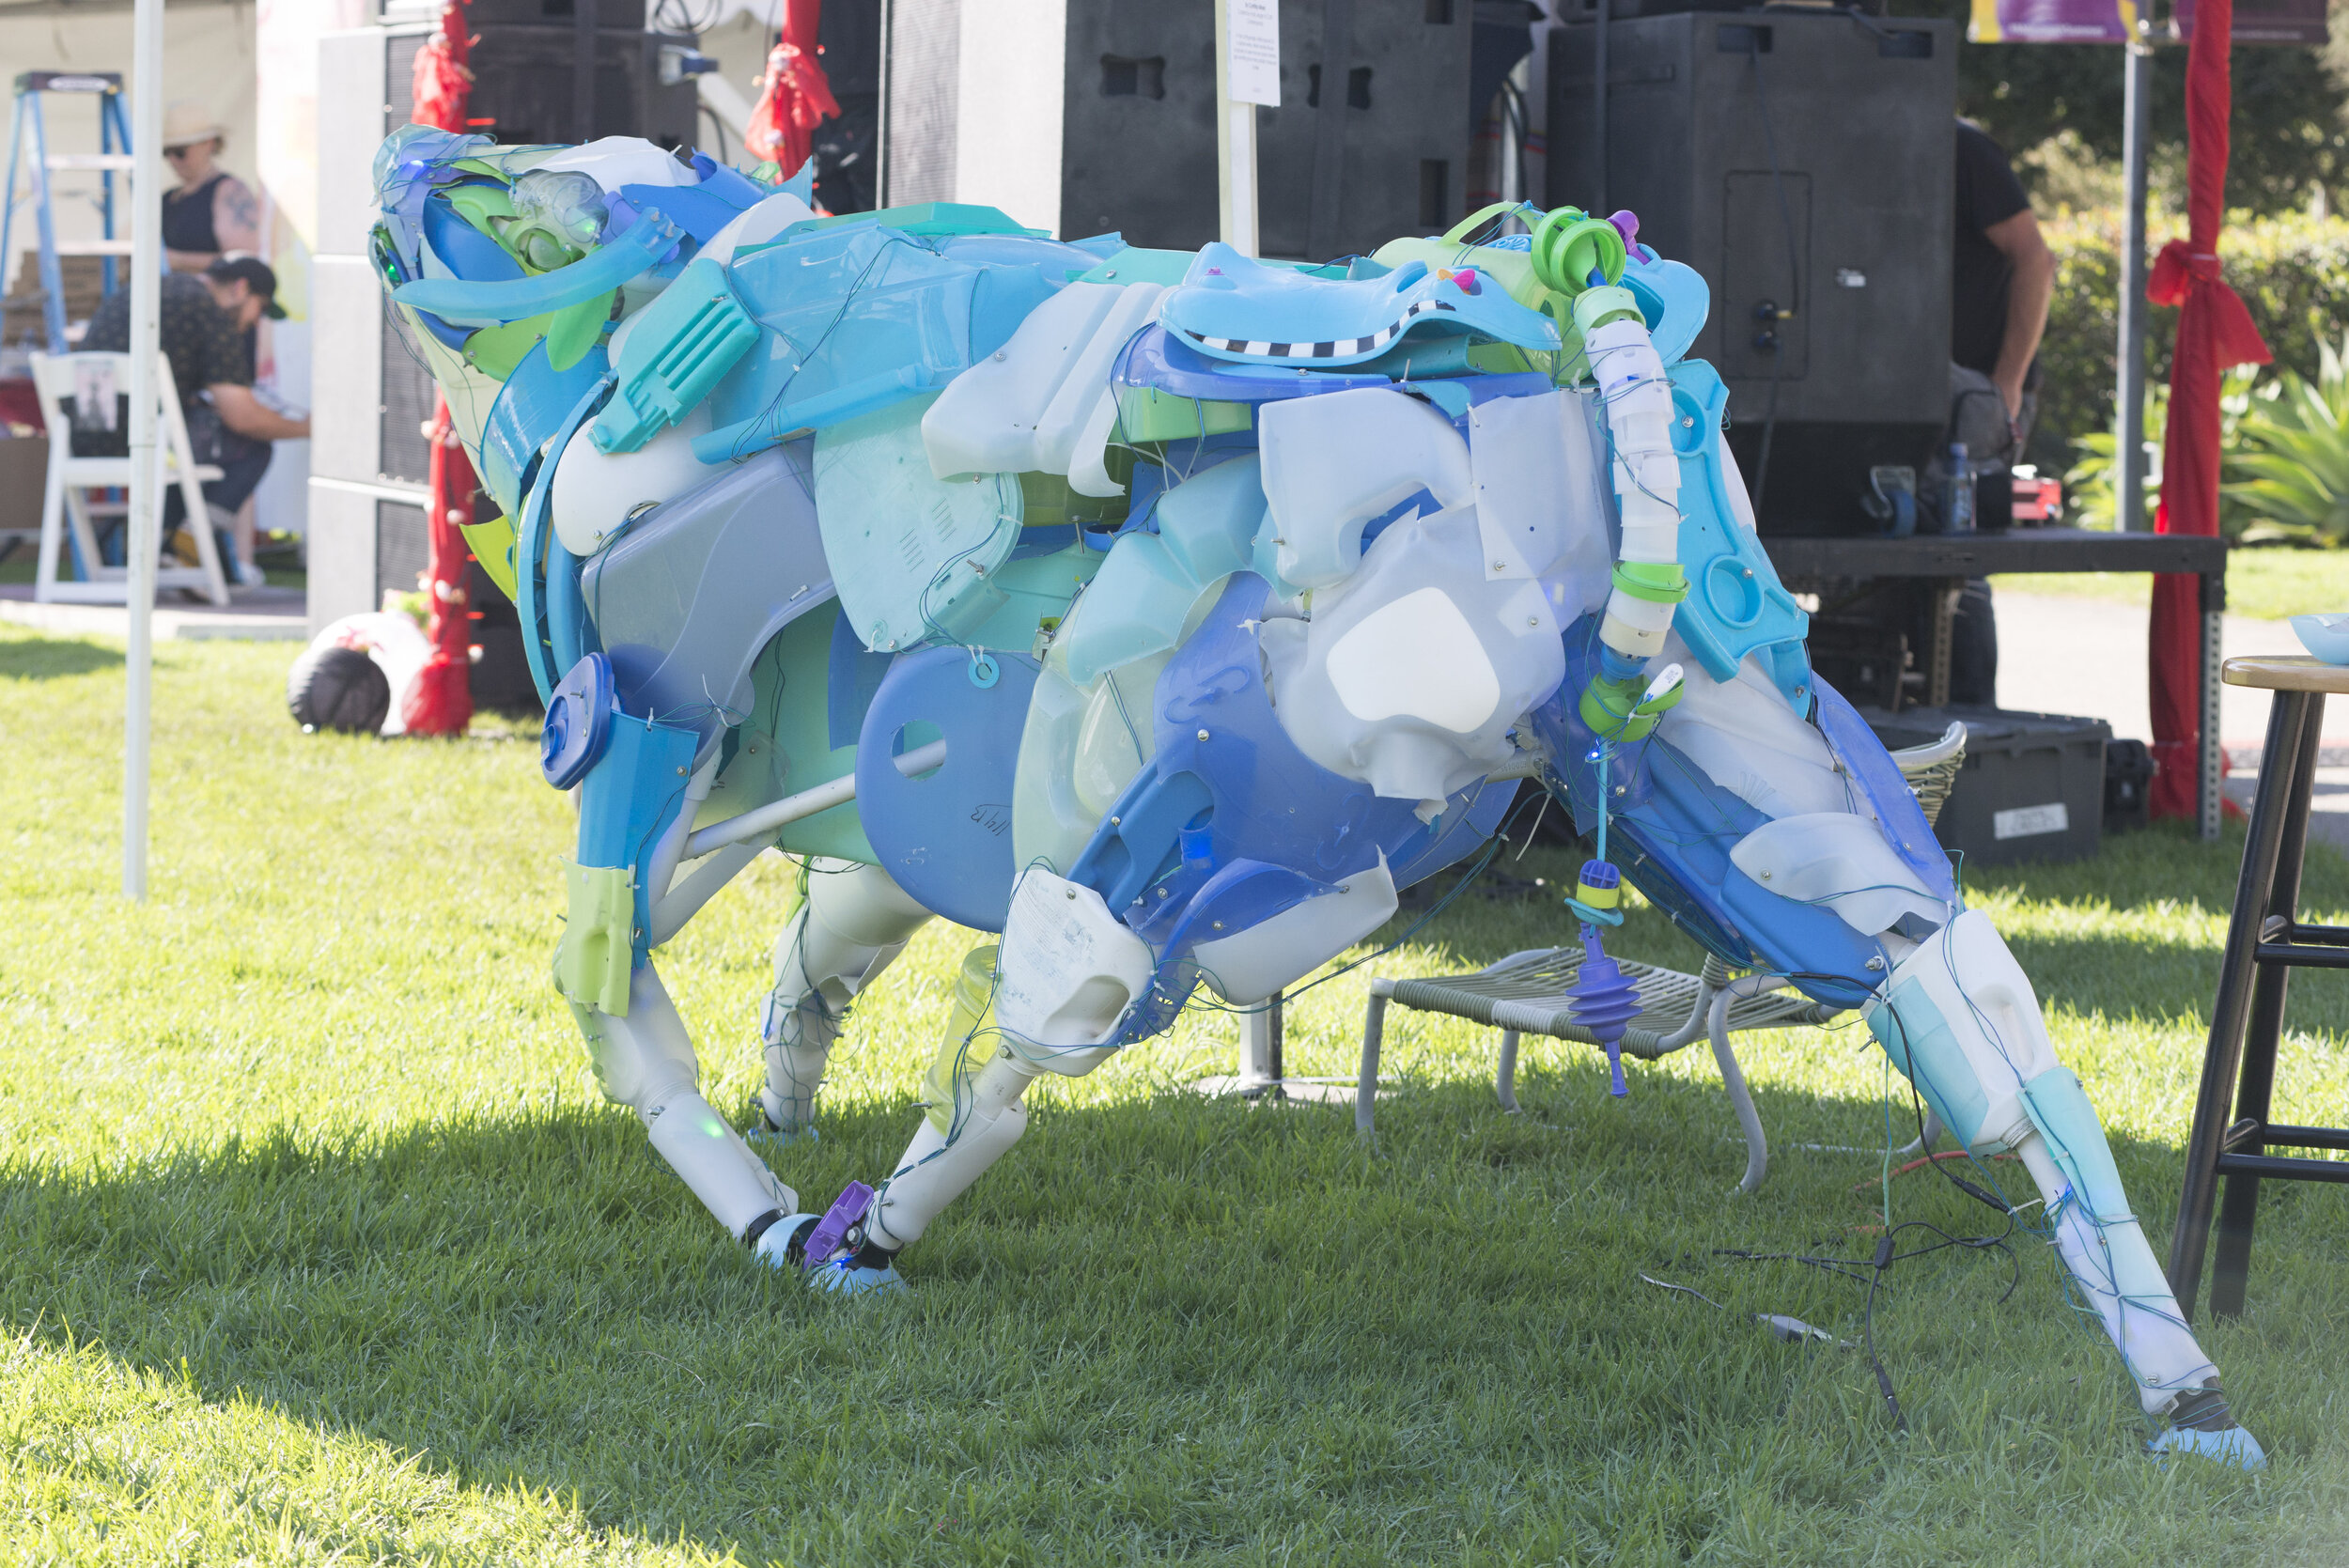 An Ox Sculpture assembled from found plastic materials on by artist Cynthia Minet on display at Tarfest on September 14, 2019.  (Anthony Mayan/The Corsair).